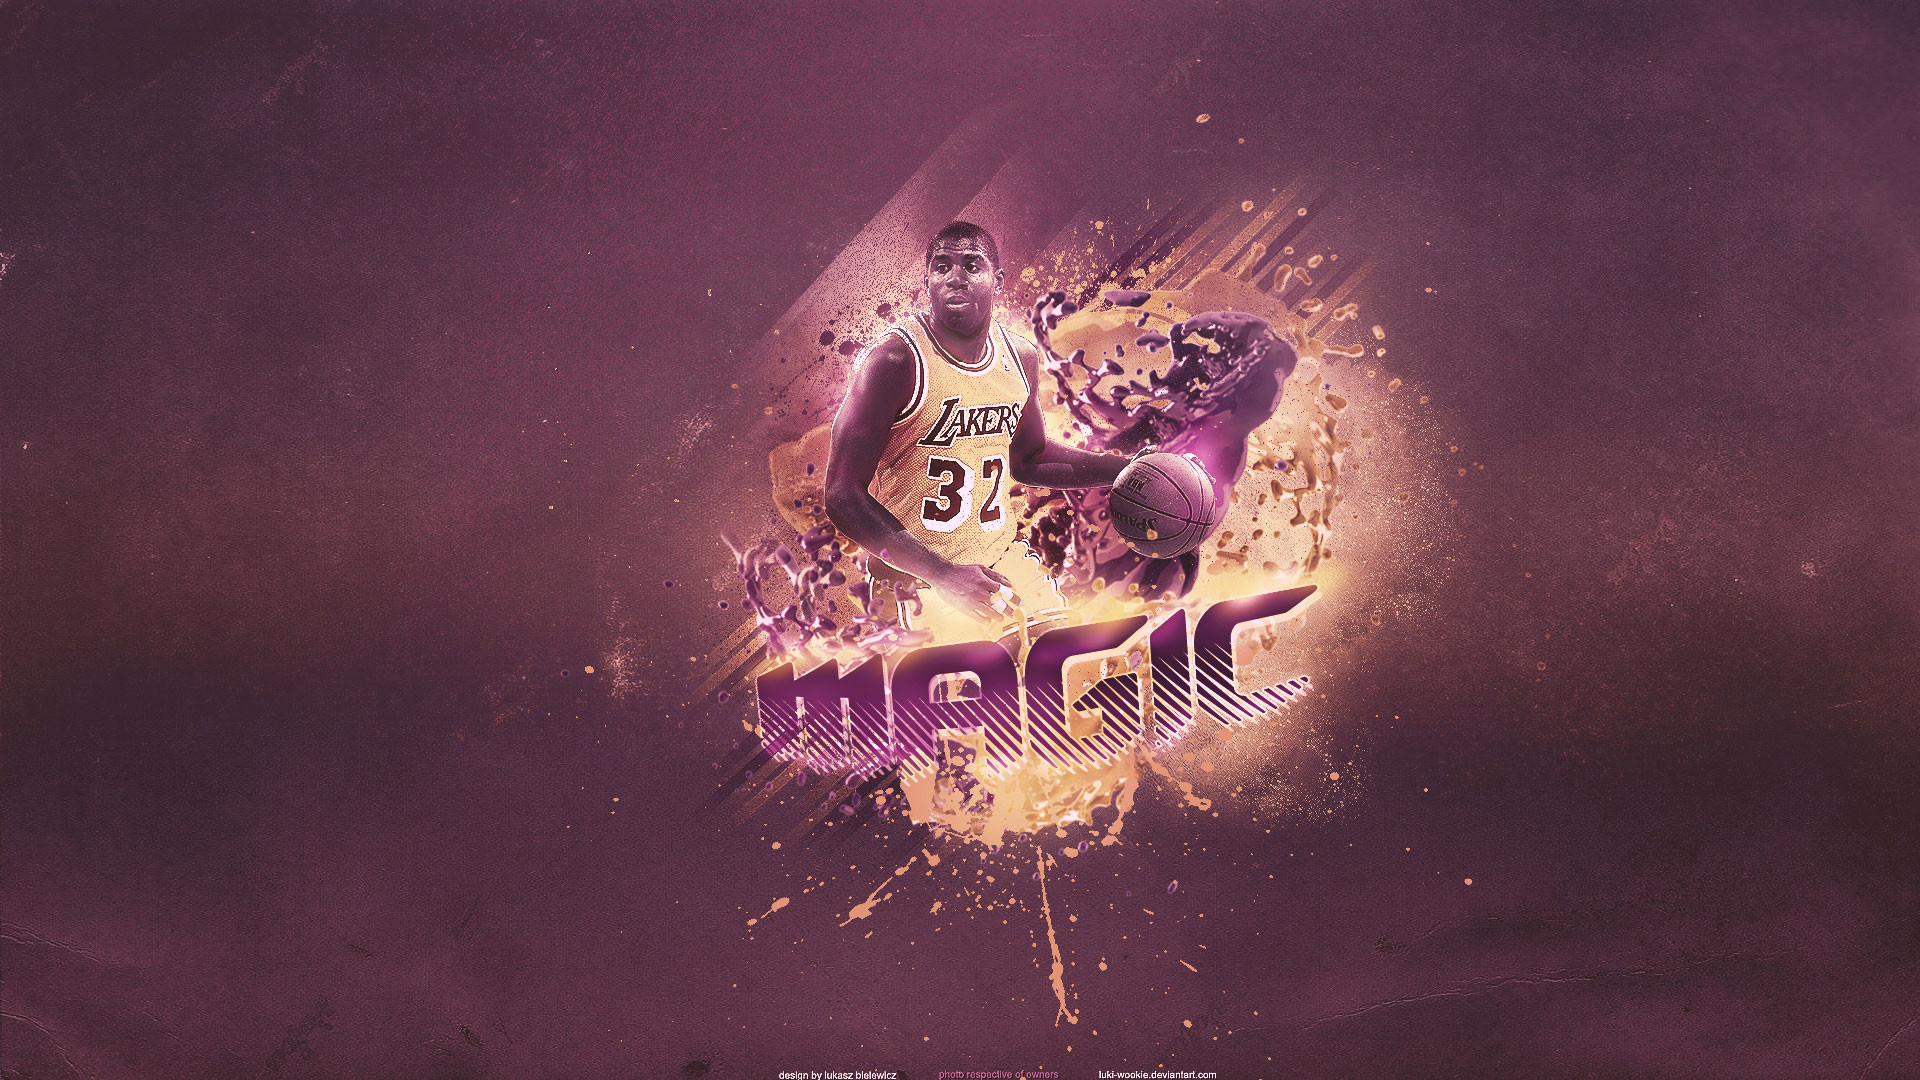 1920x1080 Magic Johnson Lakers  Widescreen Wallpaper